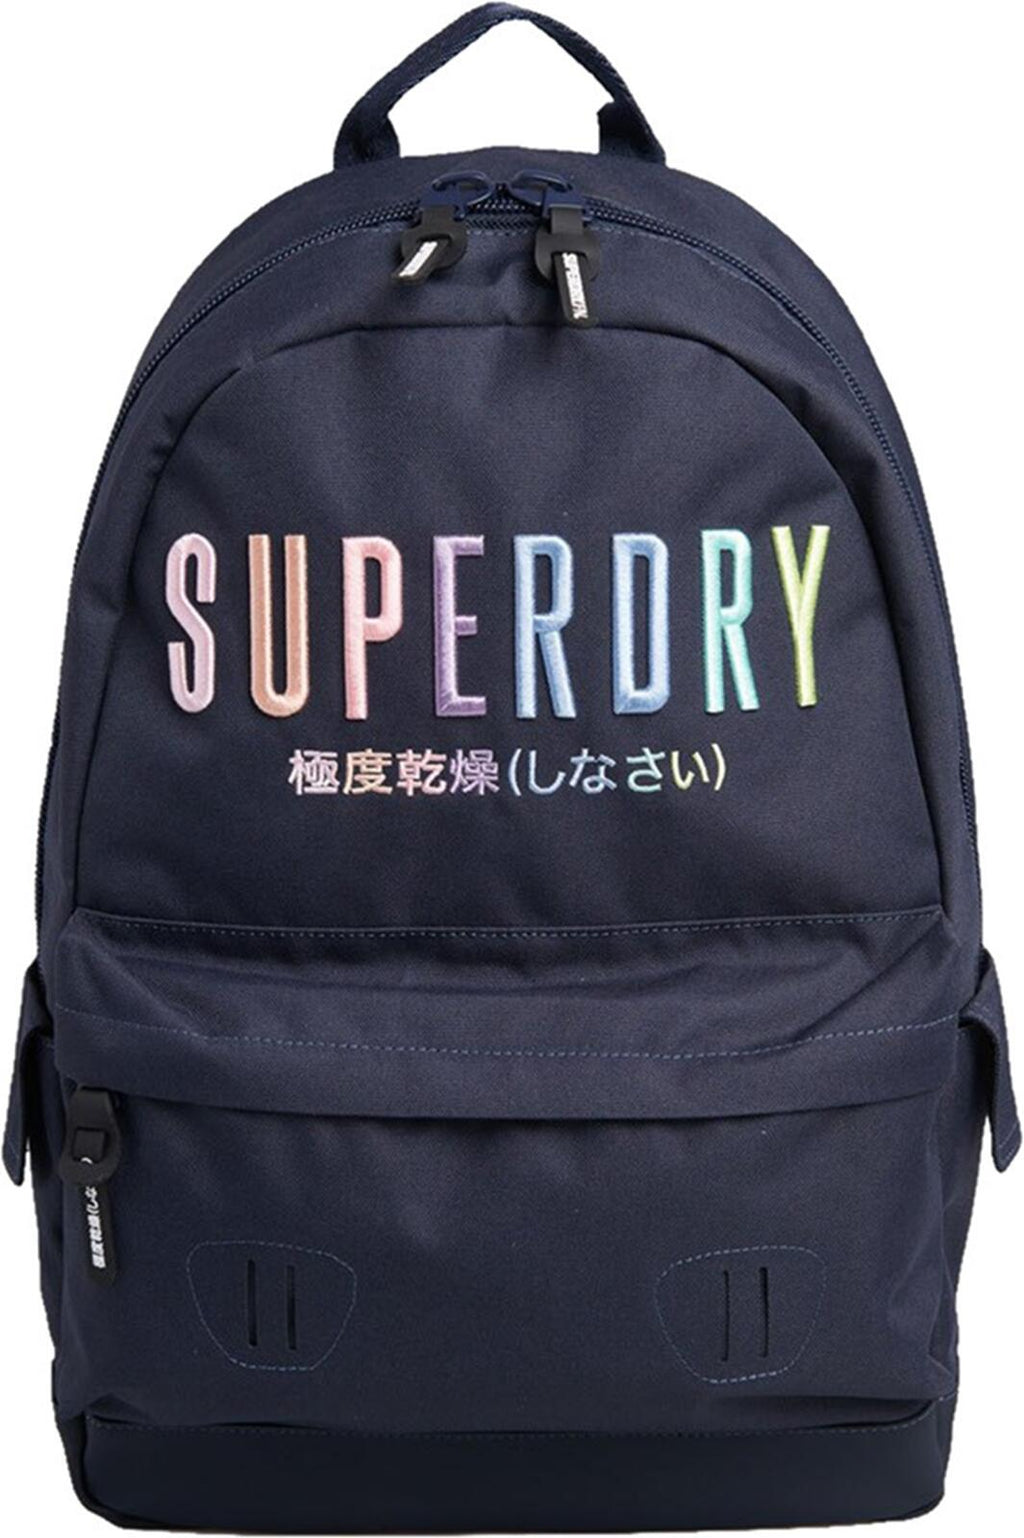 Superdry Rainbow Montana Backpack Bag Navy